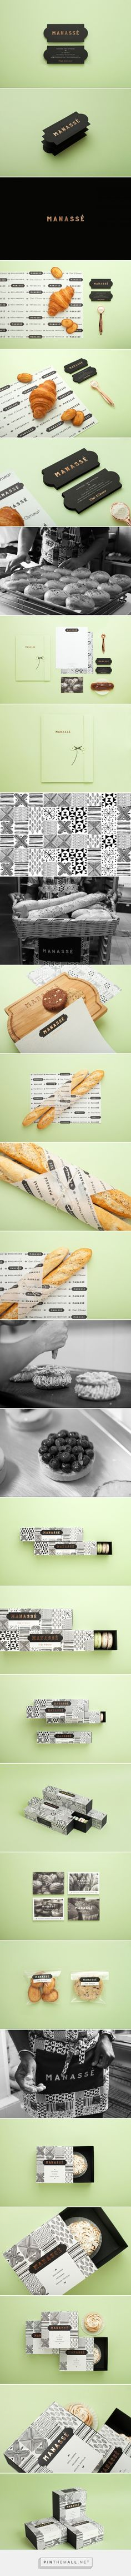 Manasse Patisserie Branding and Packaging by Menta | Fivestar Branding Agency – Design and Branding Agency & Inspiration Gallery